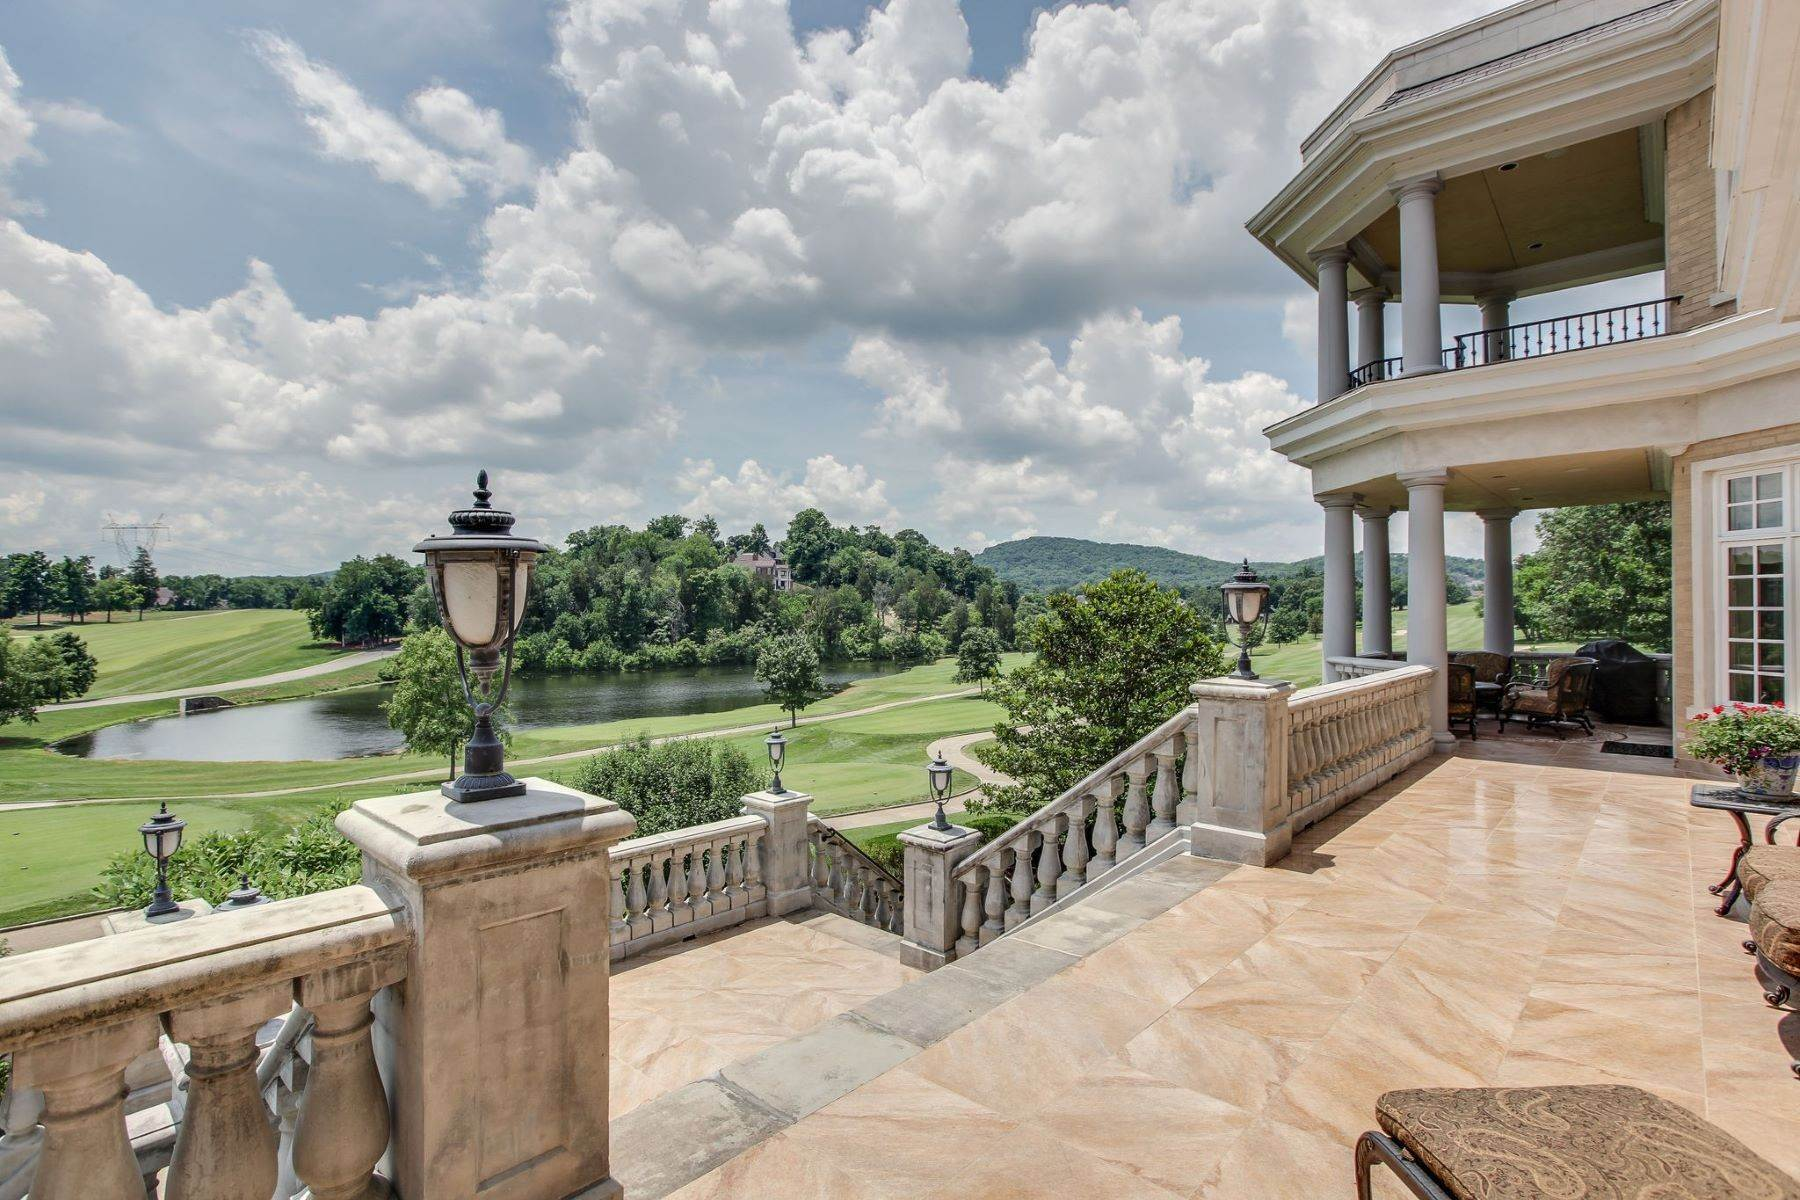 43. Single Family Homes for Sale at 2 Carmel Ln, Brentwood, Tn, 37027 2 Carmel Ln Brentwood, Tennessee 37027 United States